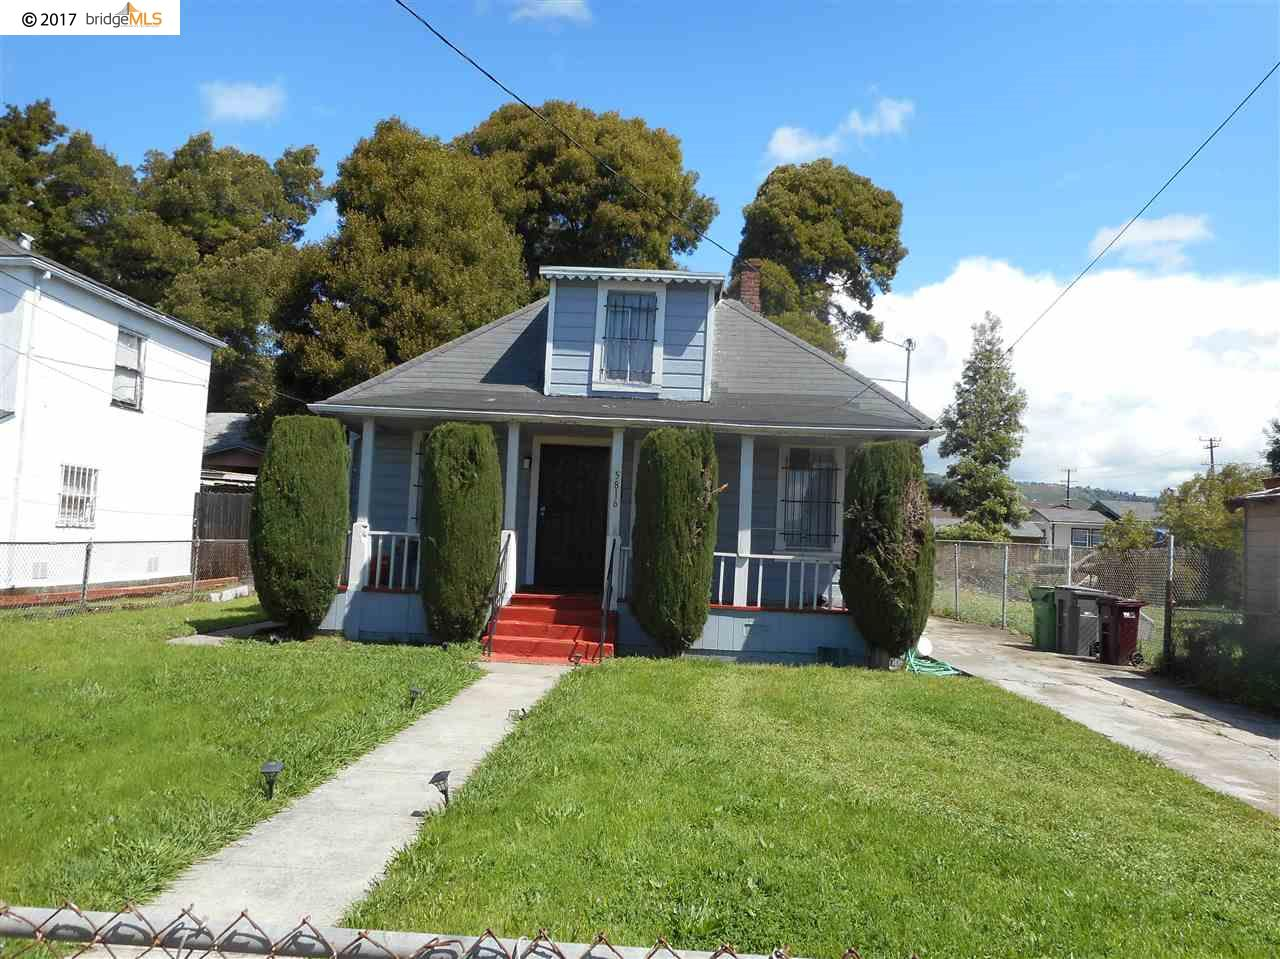 Additional photo for property listing at 5816 Harmon Avenue  Oakland, カリフォルニア 94621 アメリカ合衆国